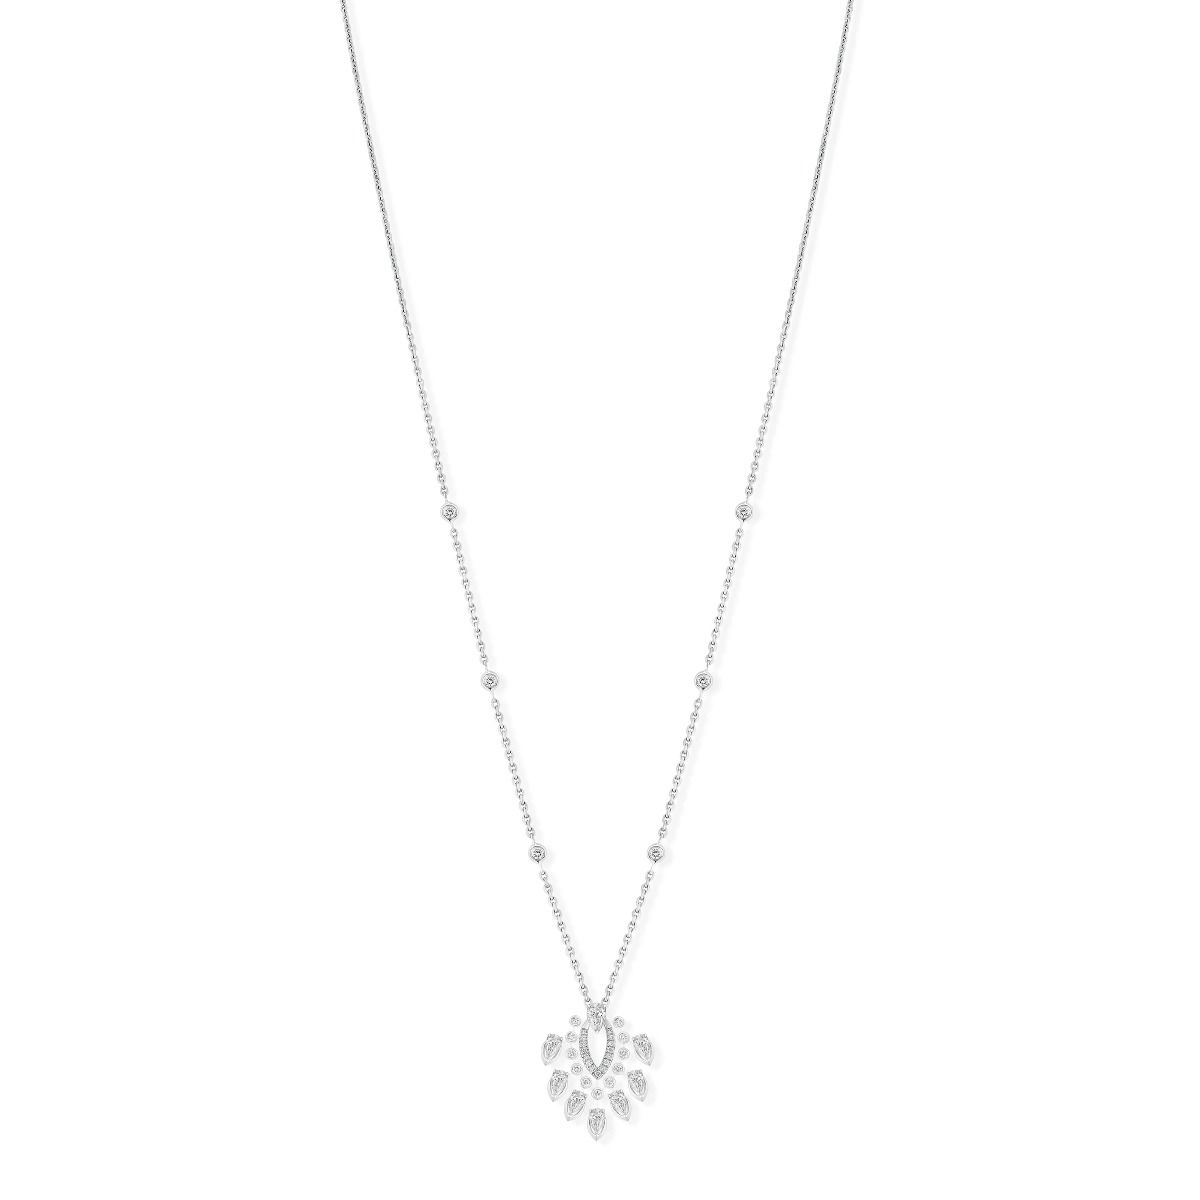 Pendant Desert Bloom Necklace - White Gold